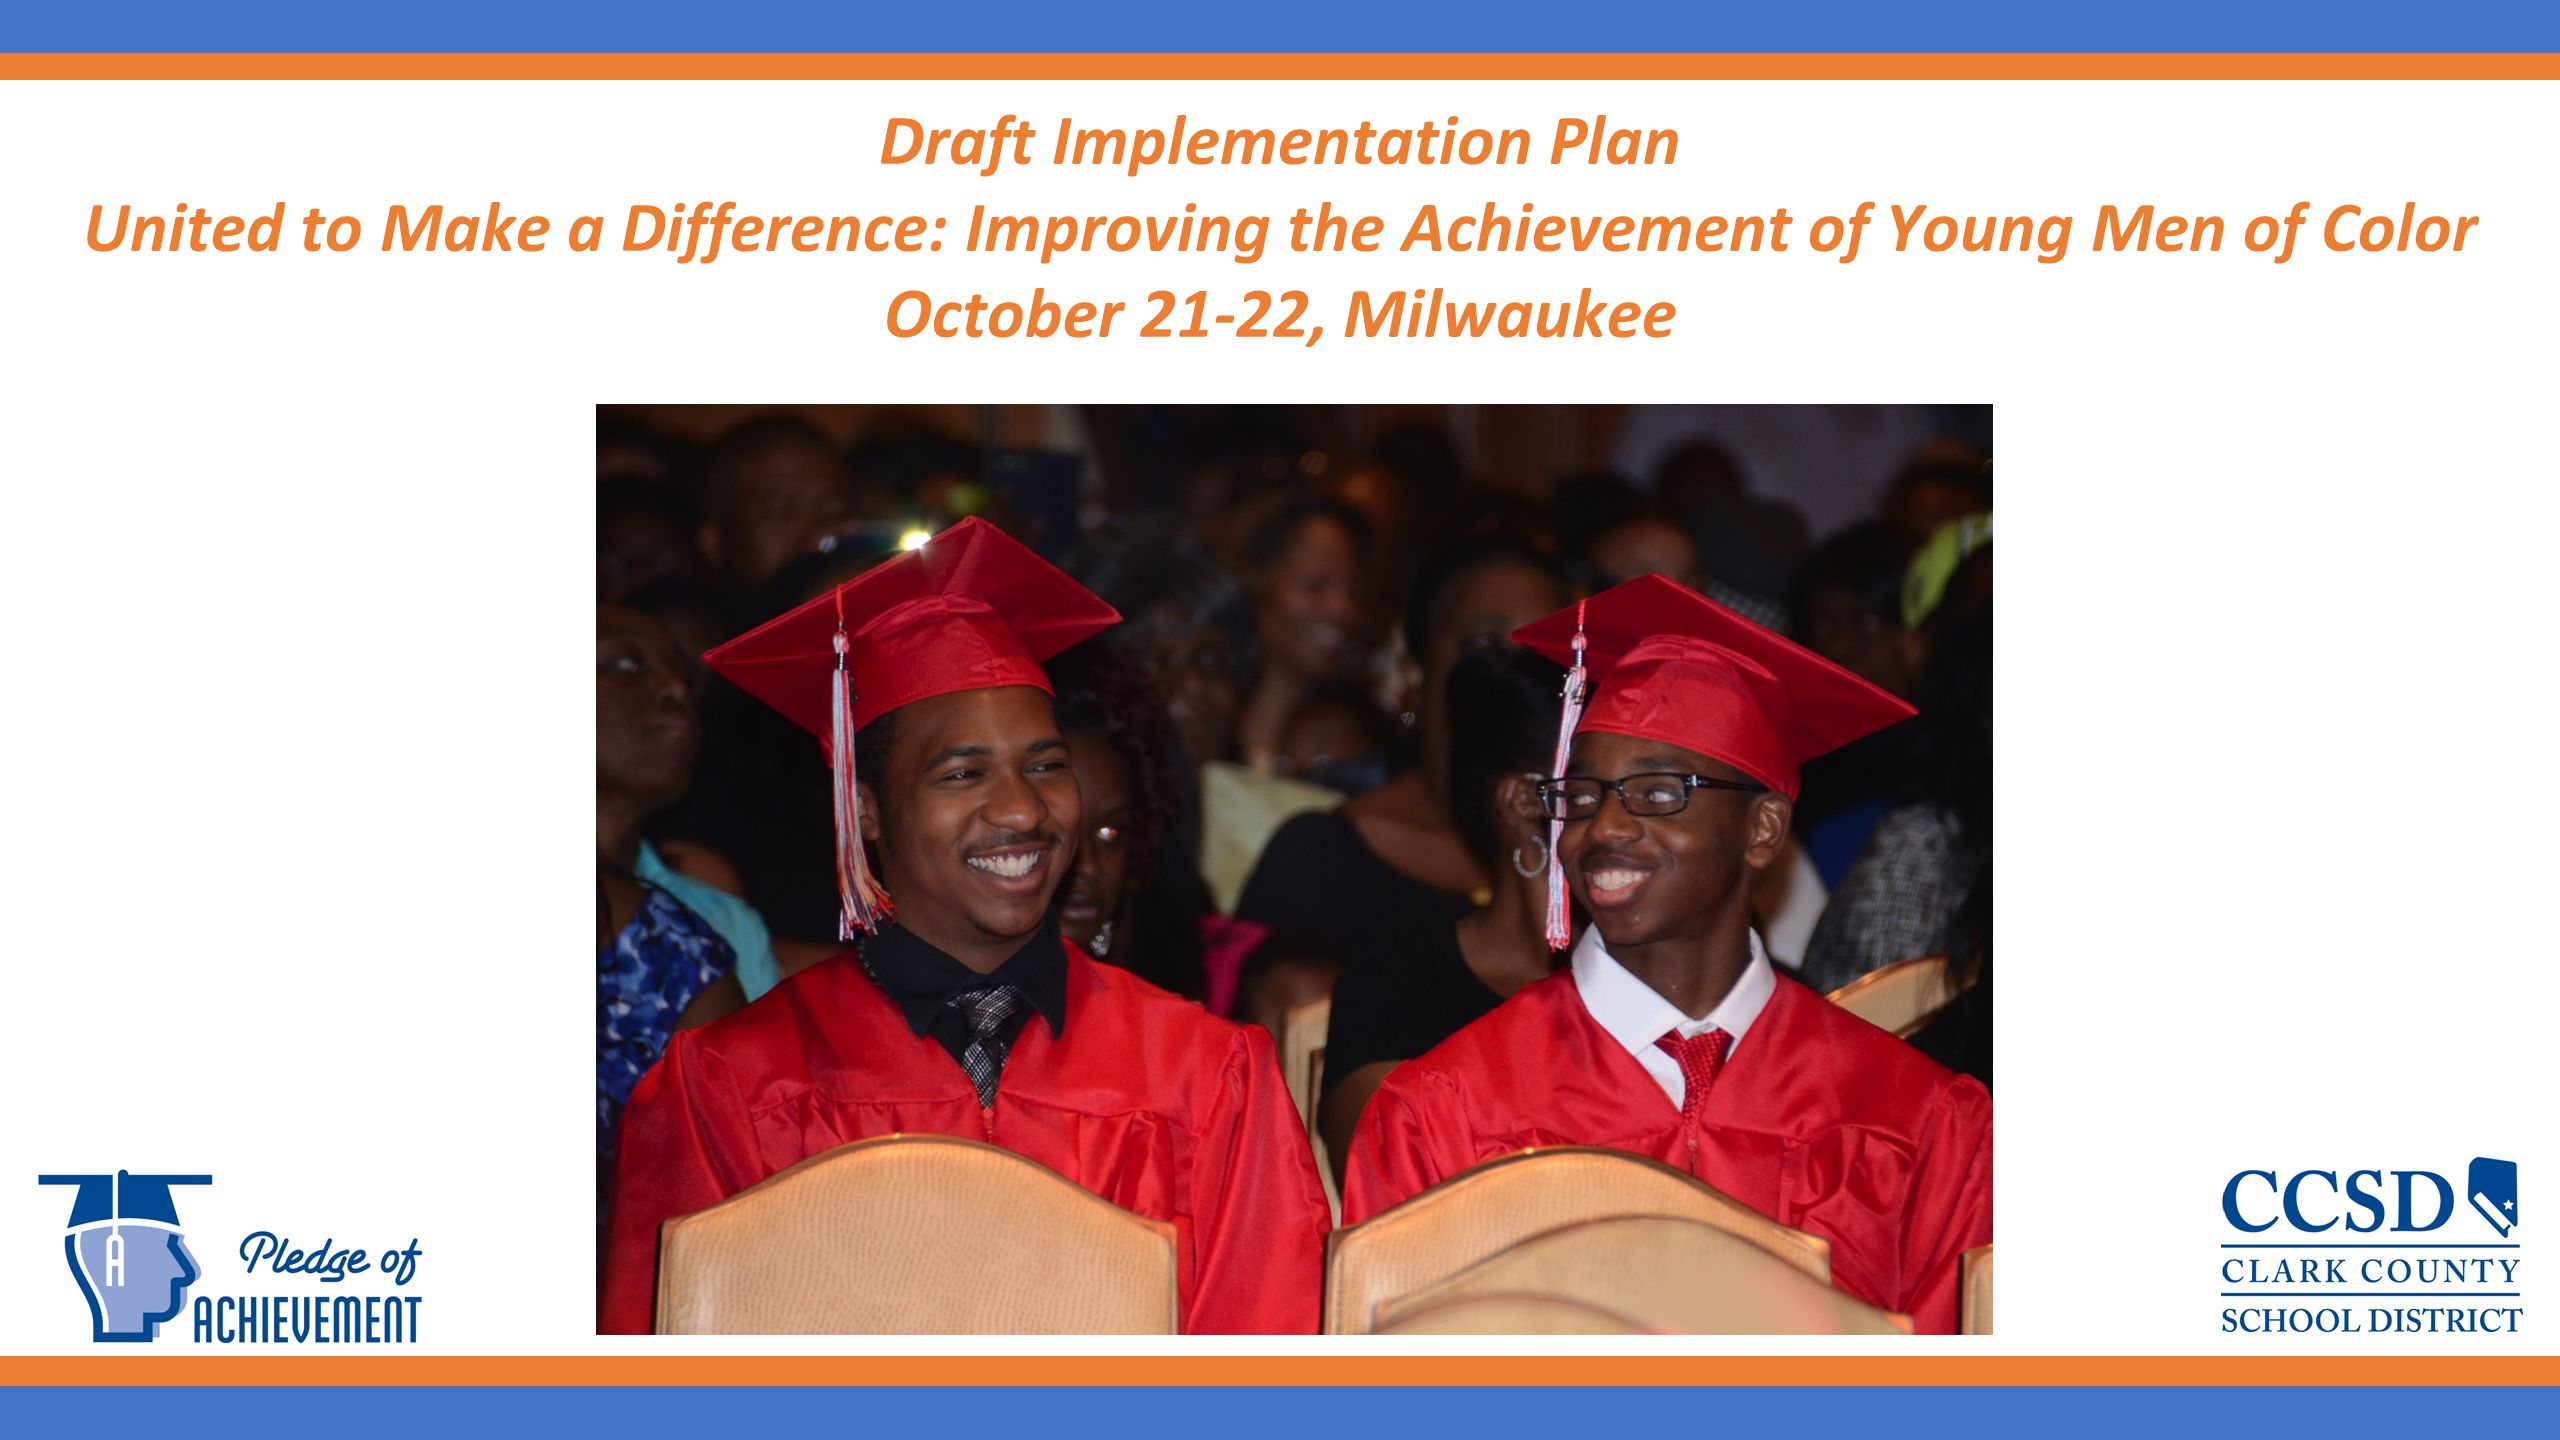 12 MY BROTHER'S KEEPER A school district and community partnership to ensure boys and young men of color are connected to resources that include: Third-grade literacy: Each One, Read One initiative Community outreach and after-school mentoring to all students Community/Student events and listening sessions